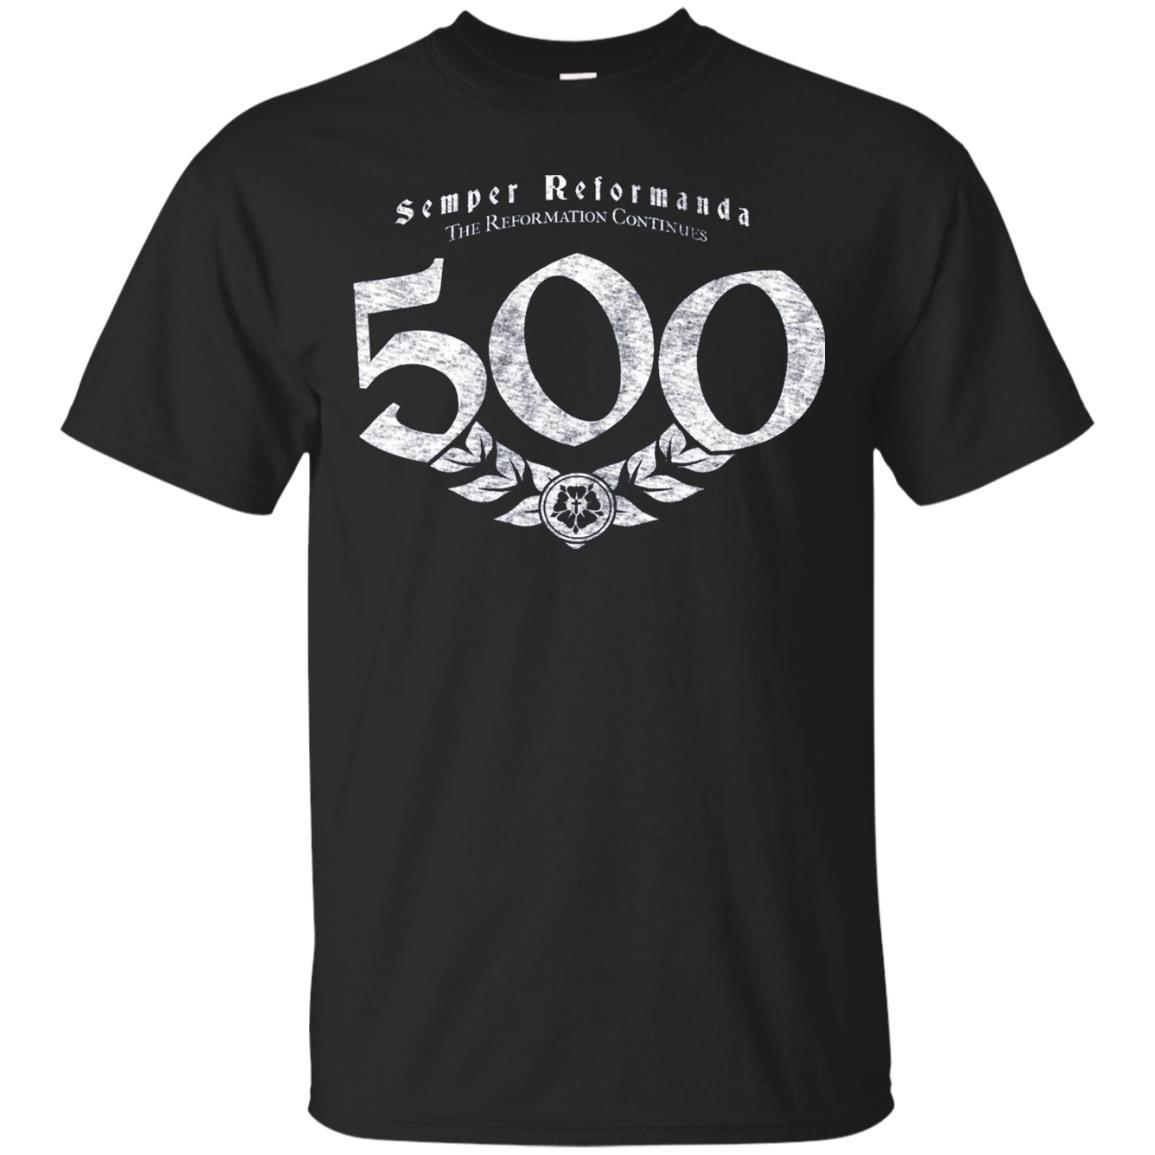 500th Anniversary Reformation Semper Reformanda Shirt